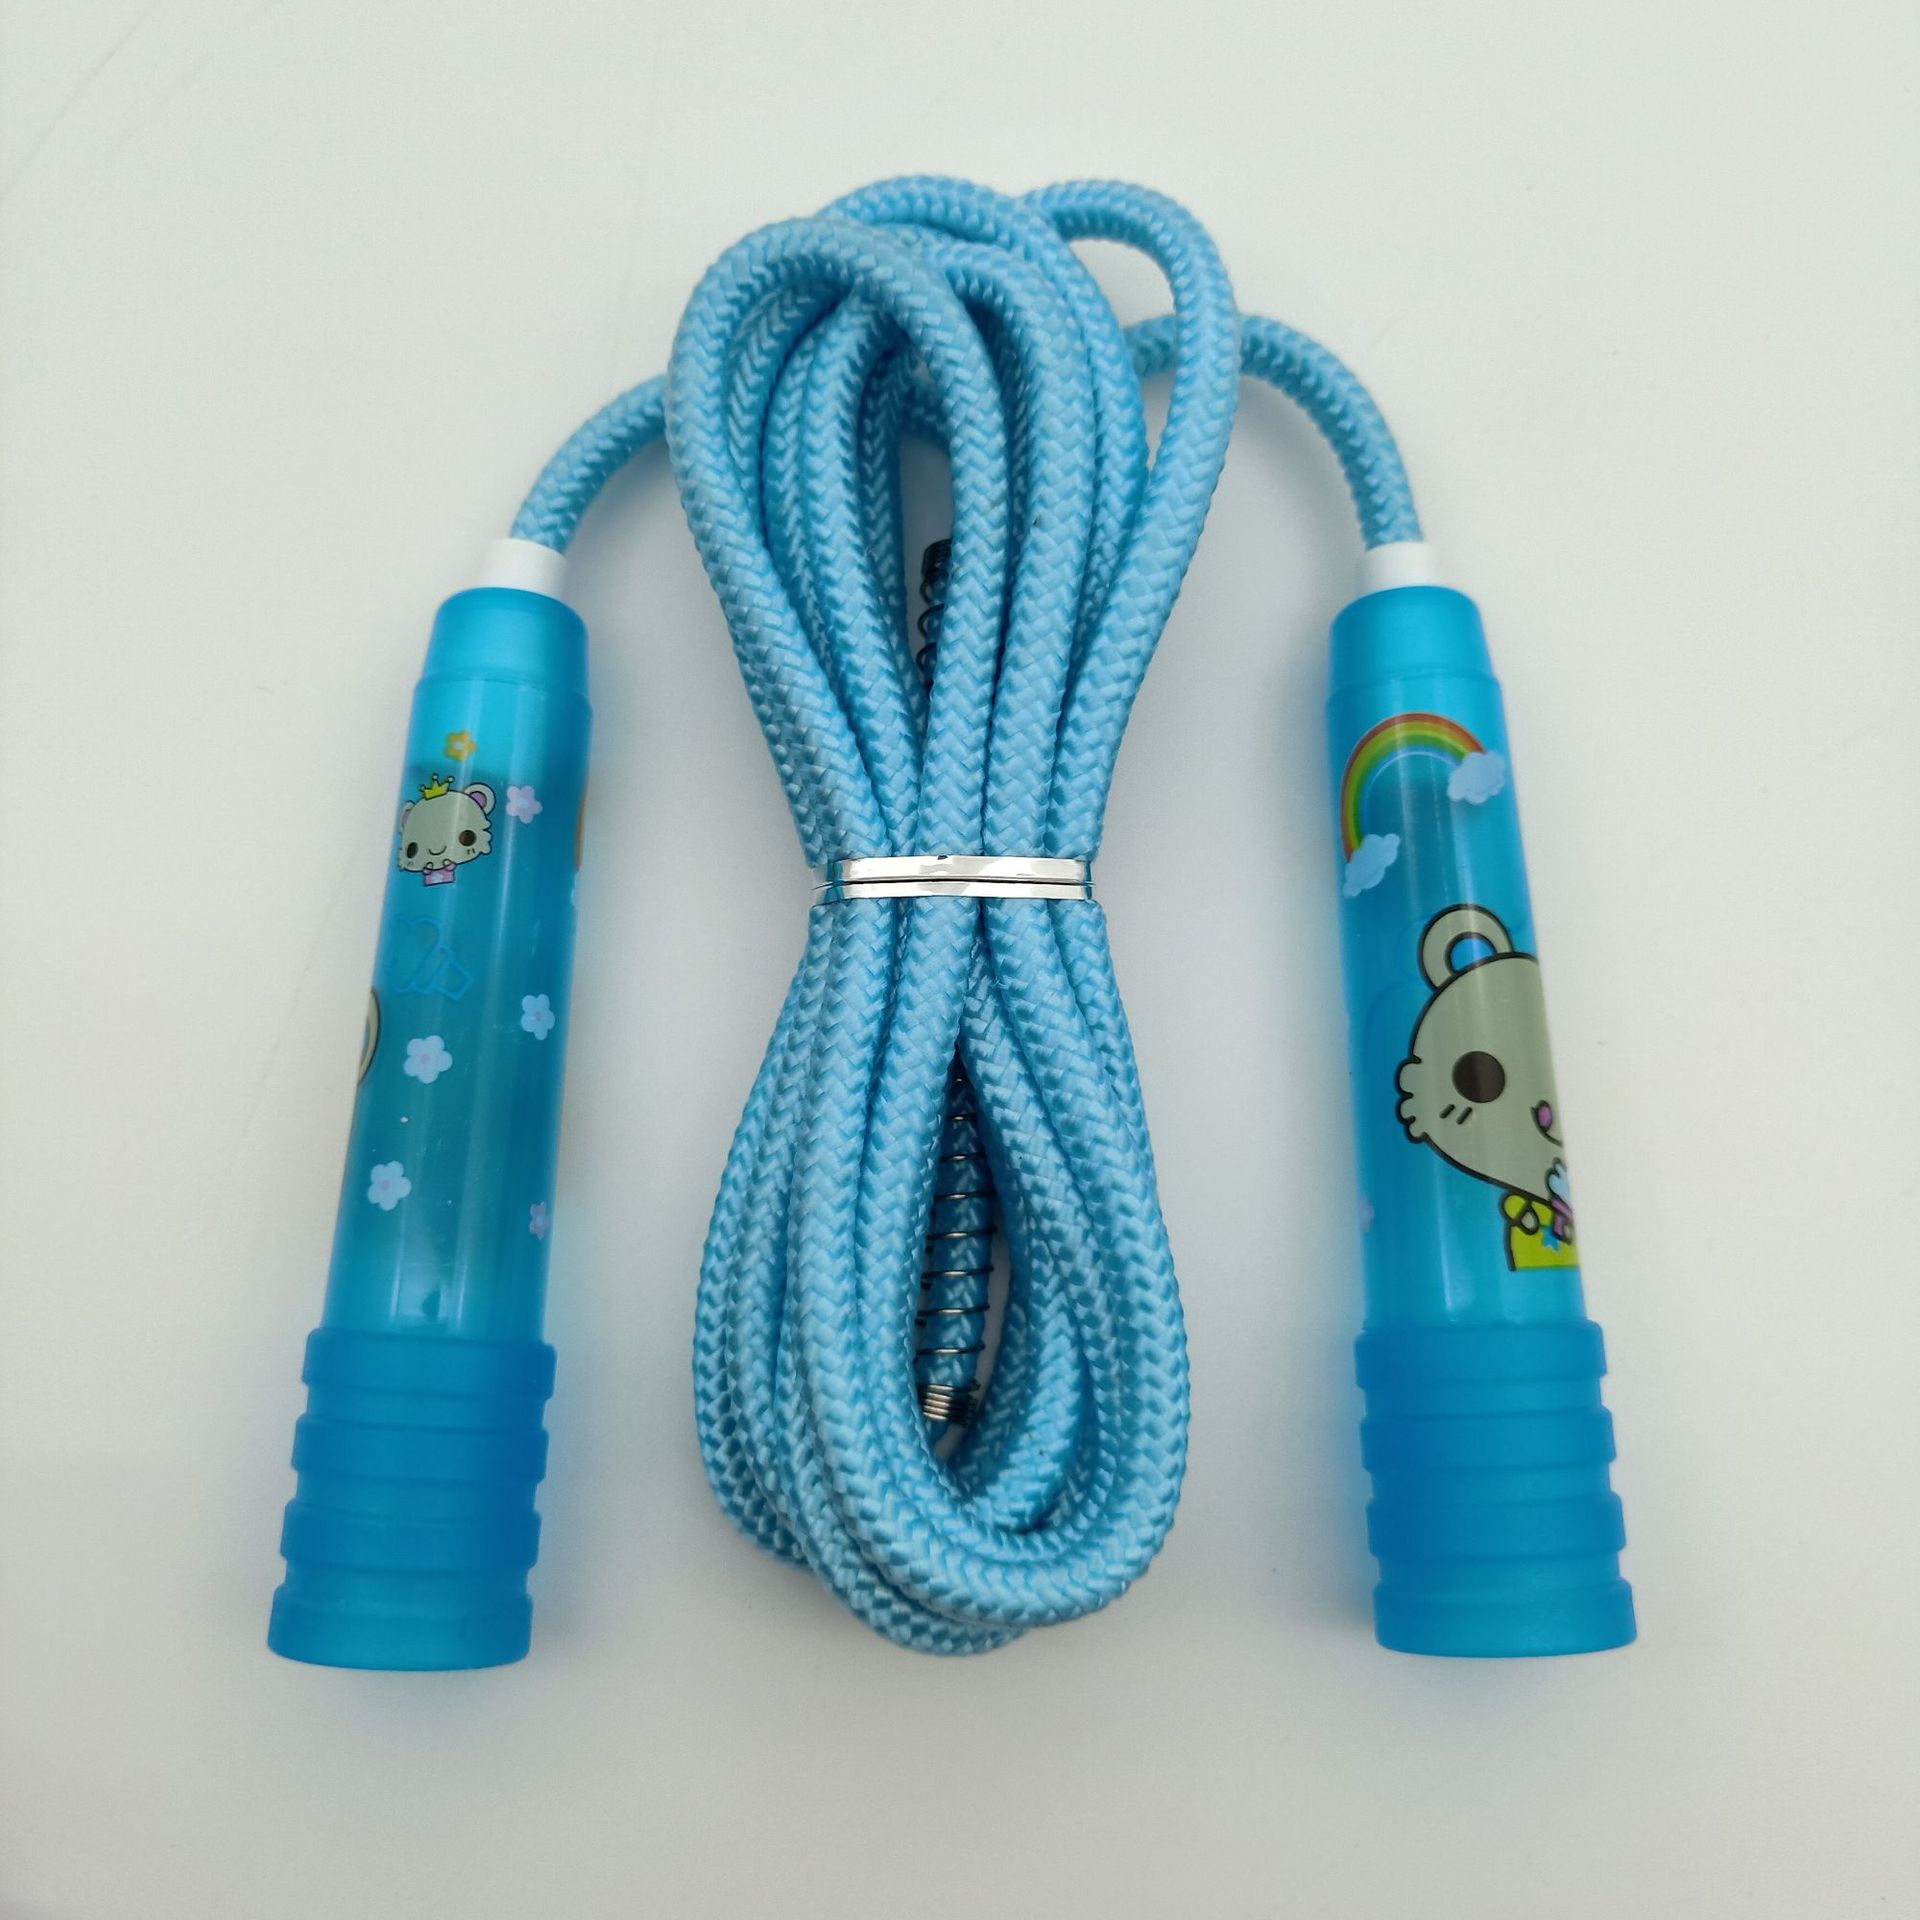 Liang Jian Cartoon Printed Big Horn Plastic Handle PVC Bag Jump Rope Manufacturers Direct Selling Children Entertainment Activit